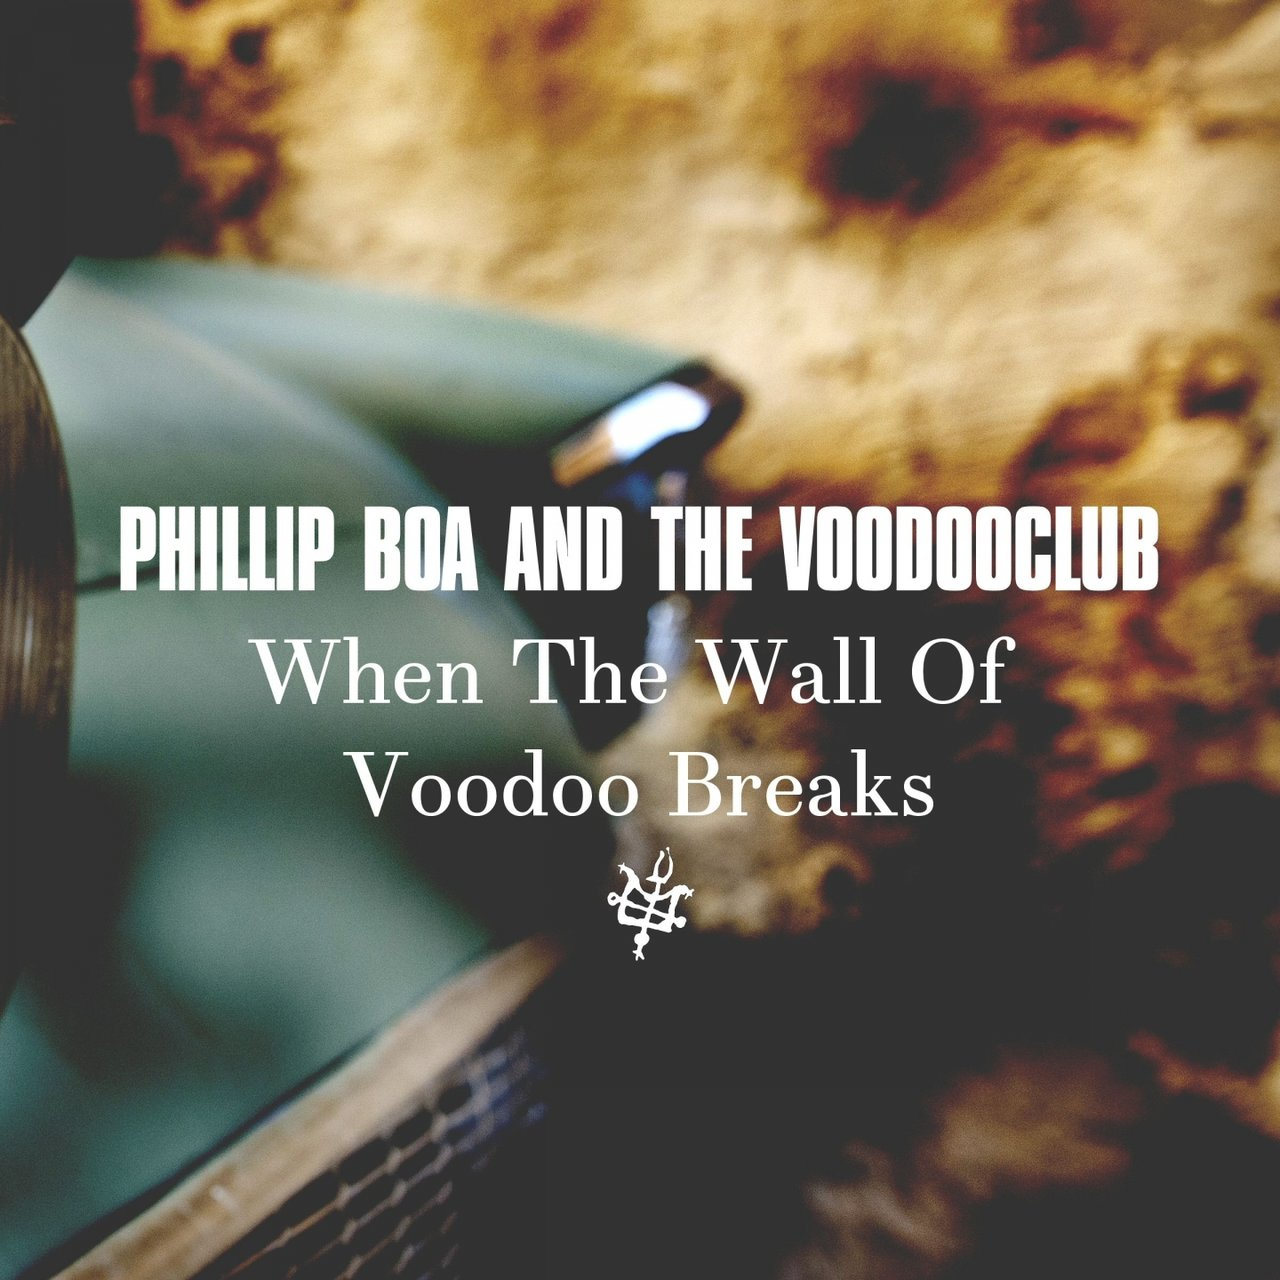 When the Wall of Voodoo Breaks